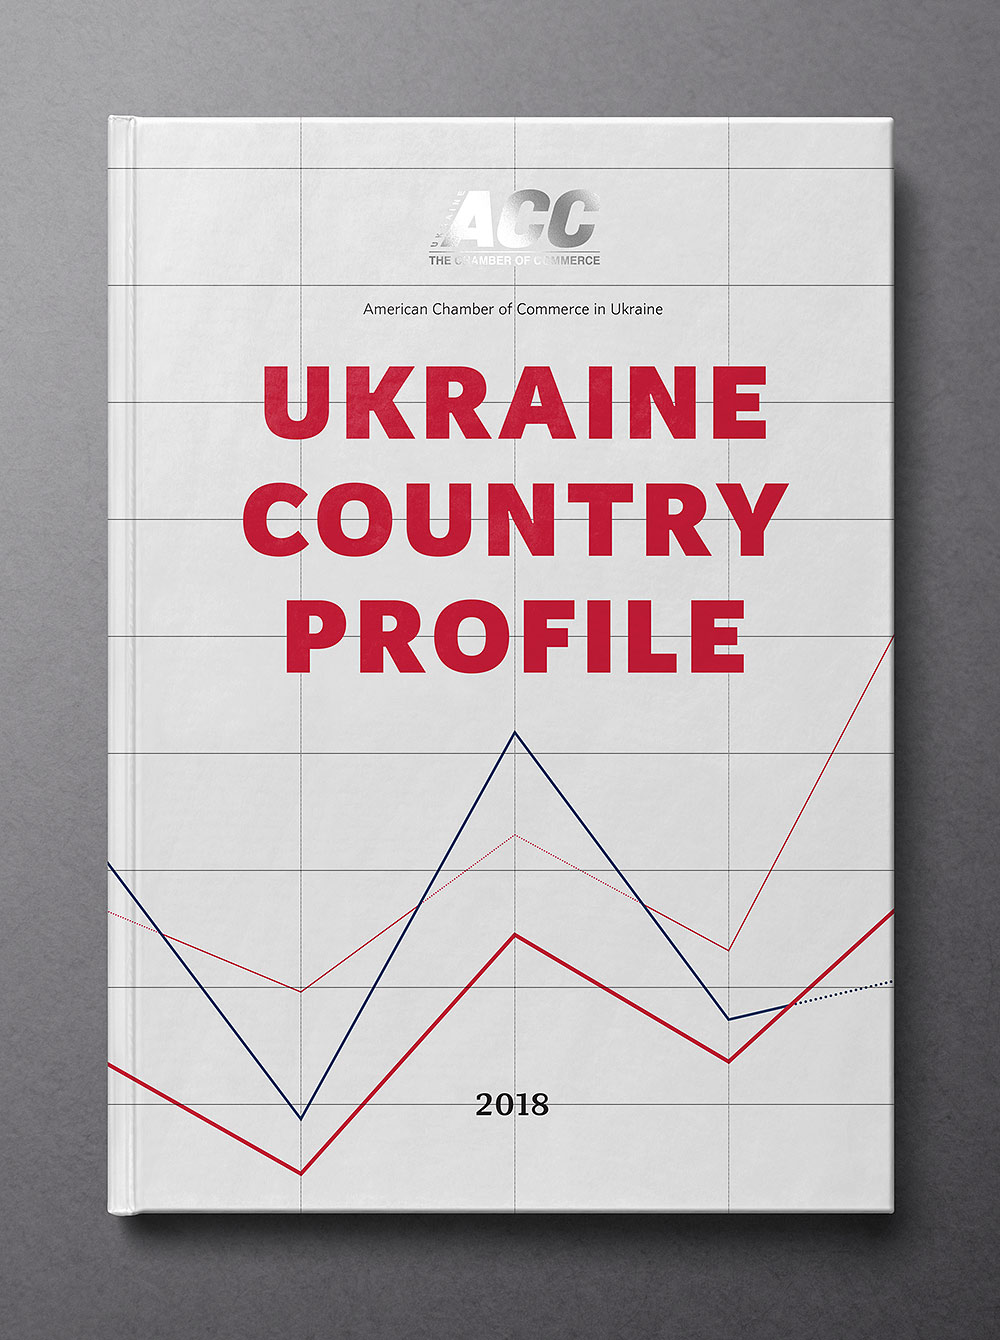 Ukraine Country Profile 2018 book cover. American Chamber of Commerce (ACC).